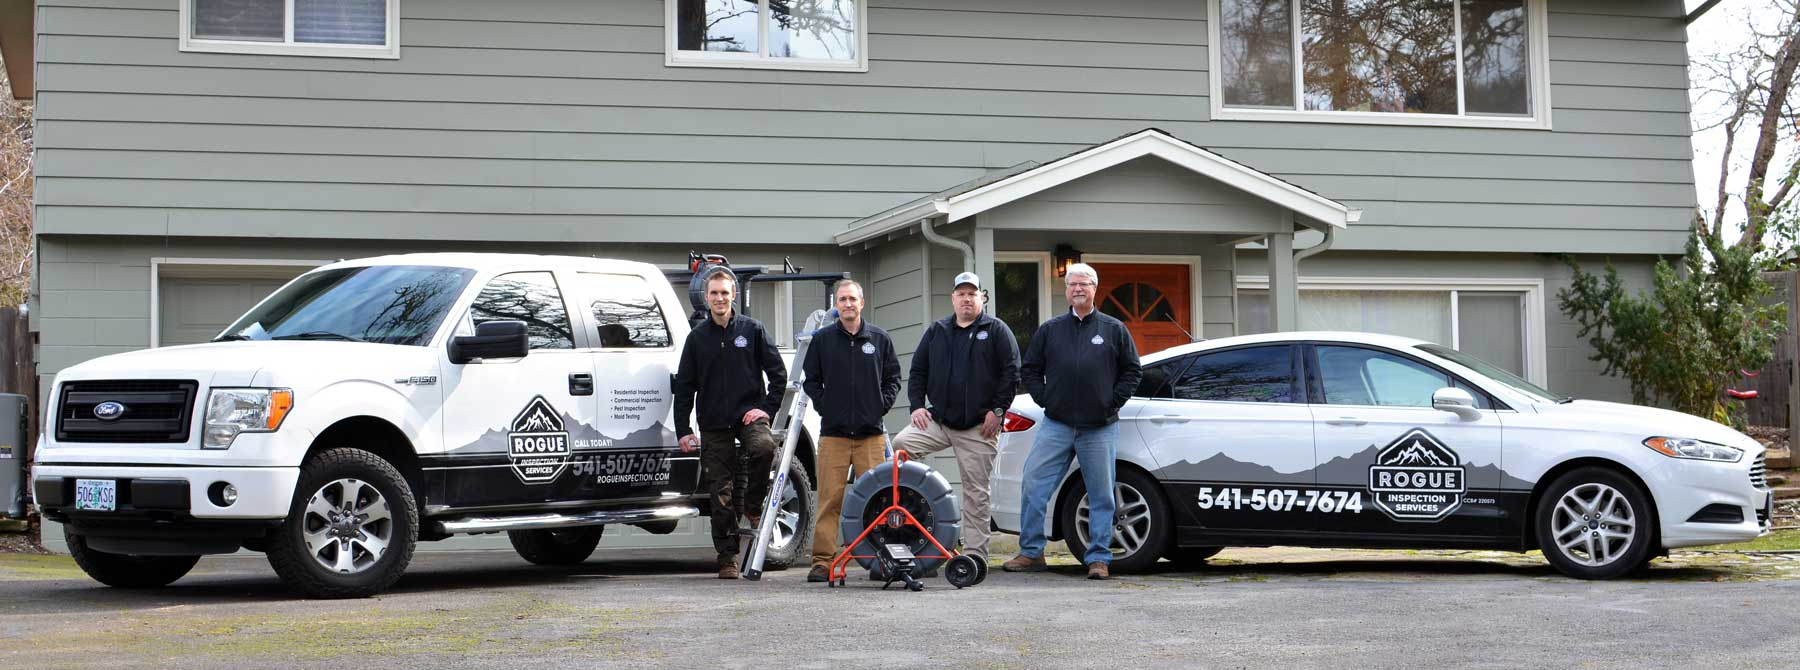 Rogue Inspection Services - Serving Souther Oregon